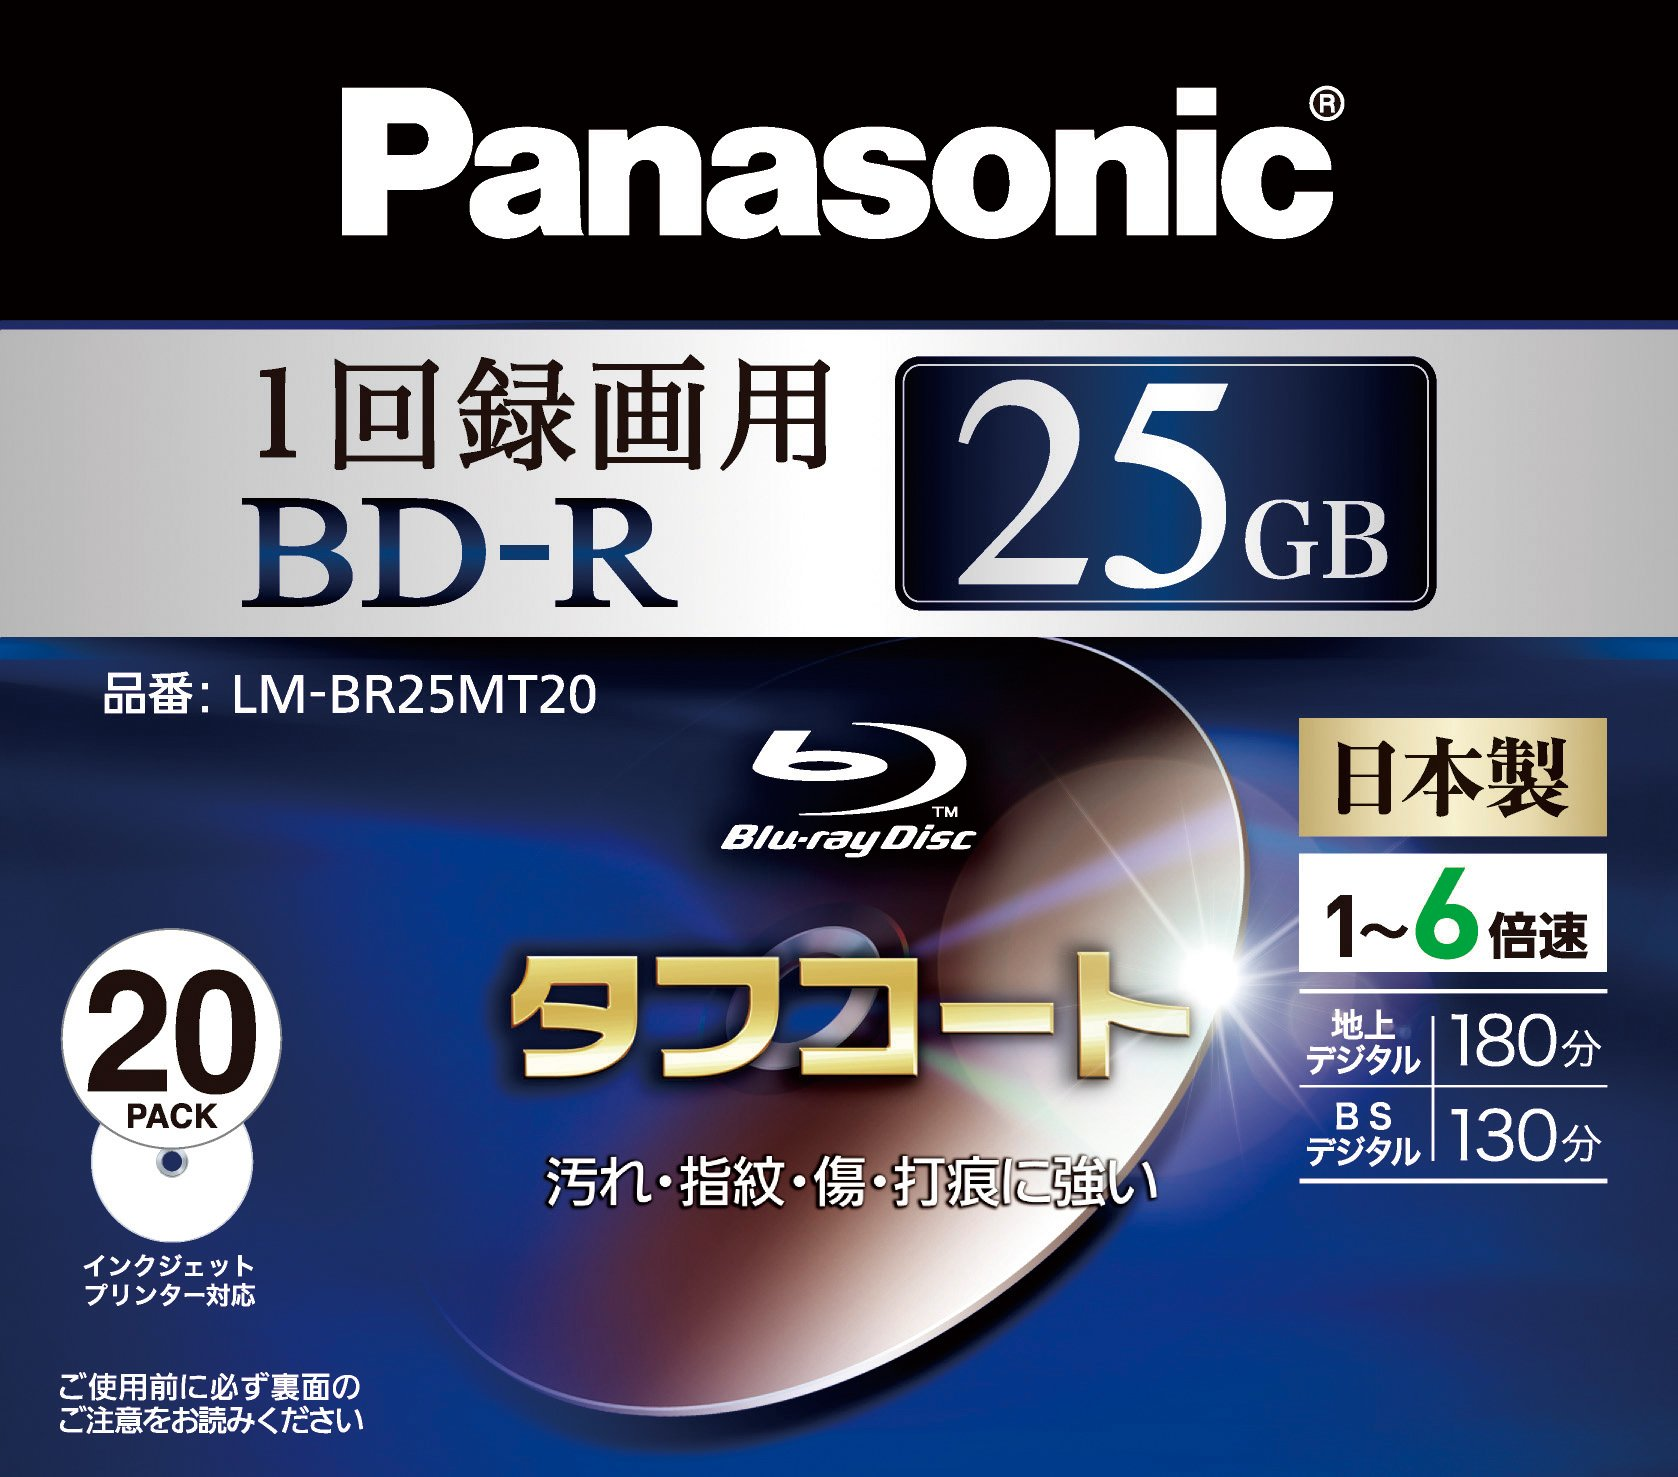 PANASONIC Blu-ray BD-R Recordable Disk | 25GB 6x Speed | 20 Pack Ink-jet Printable (Japan Import)